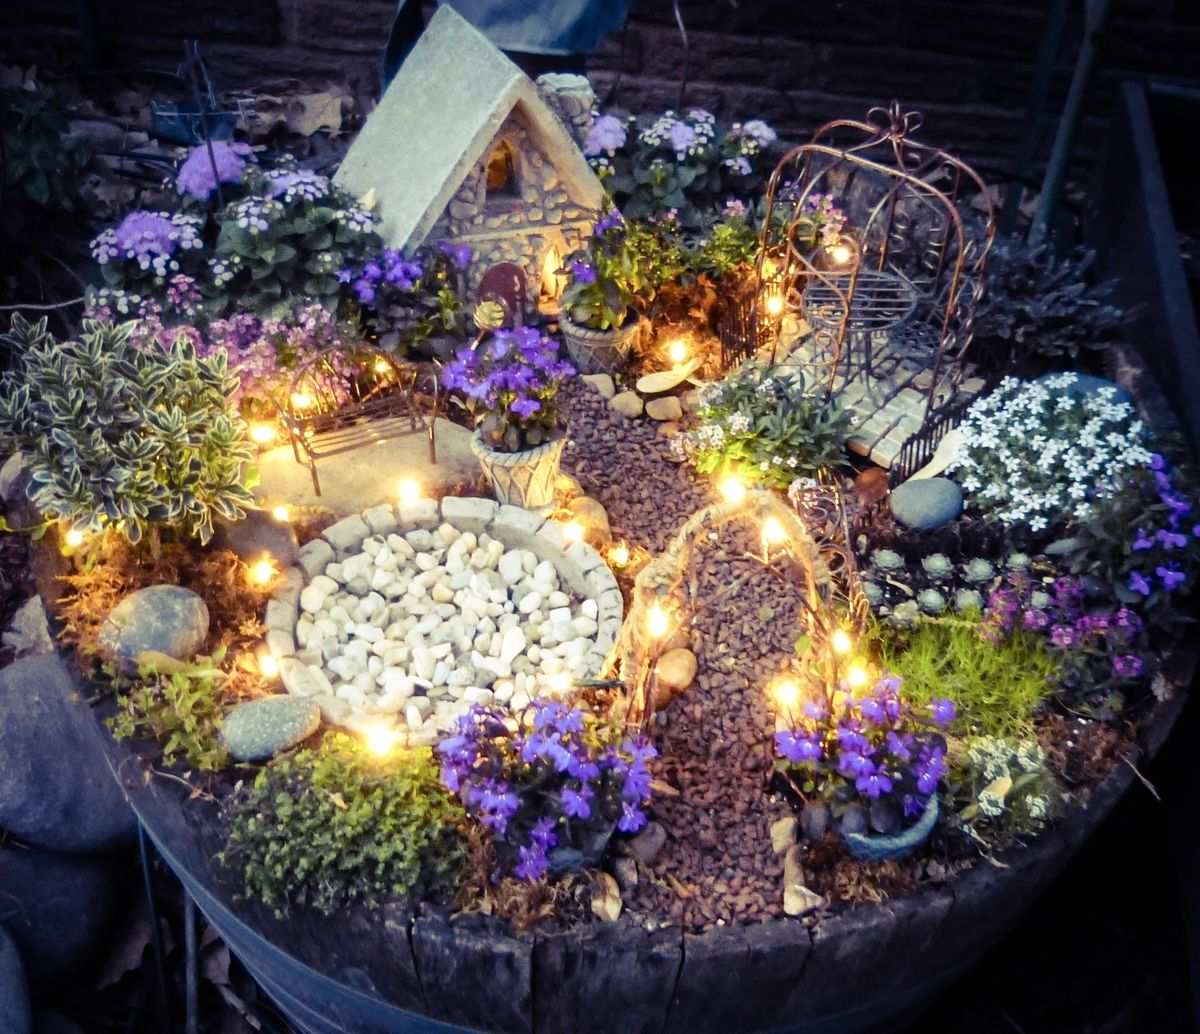 12 some enchanted evening - Diy Fairy Garden Ideas